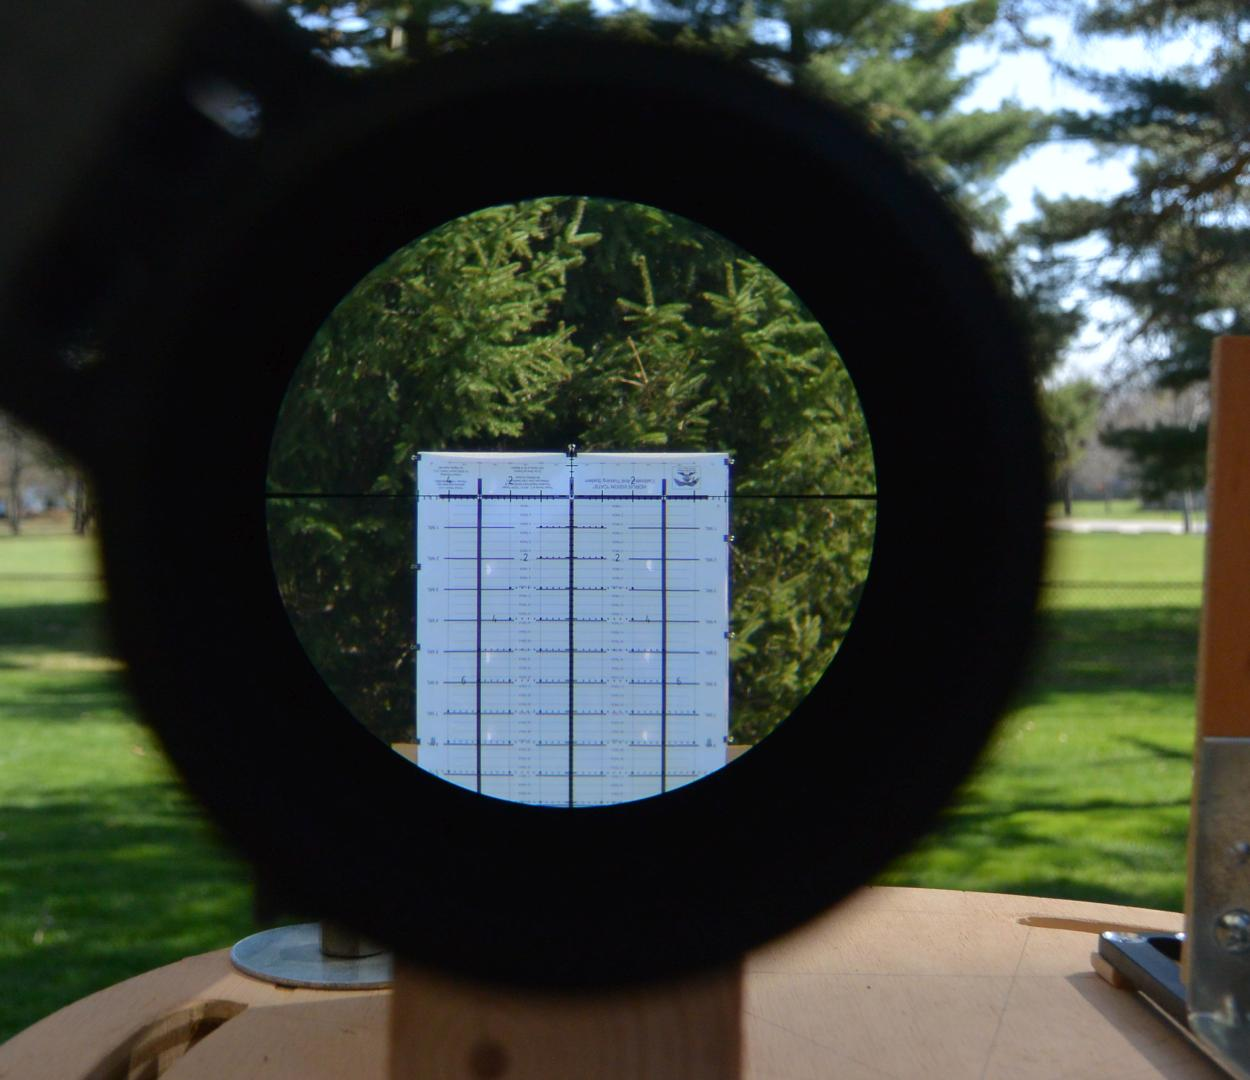 Performing mechanical testing on the Minox 5-25x56 LR using the Horus CATS tall target